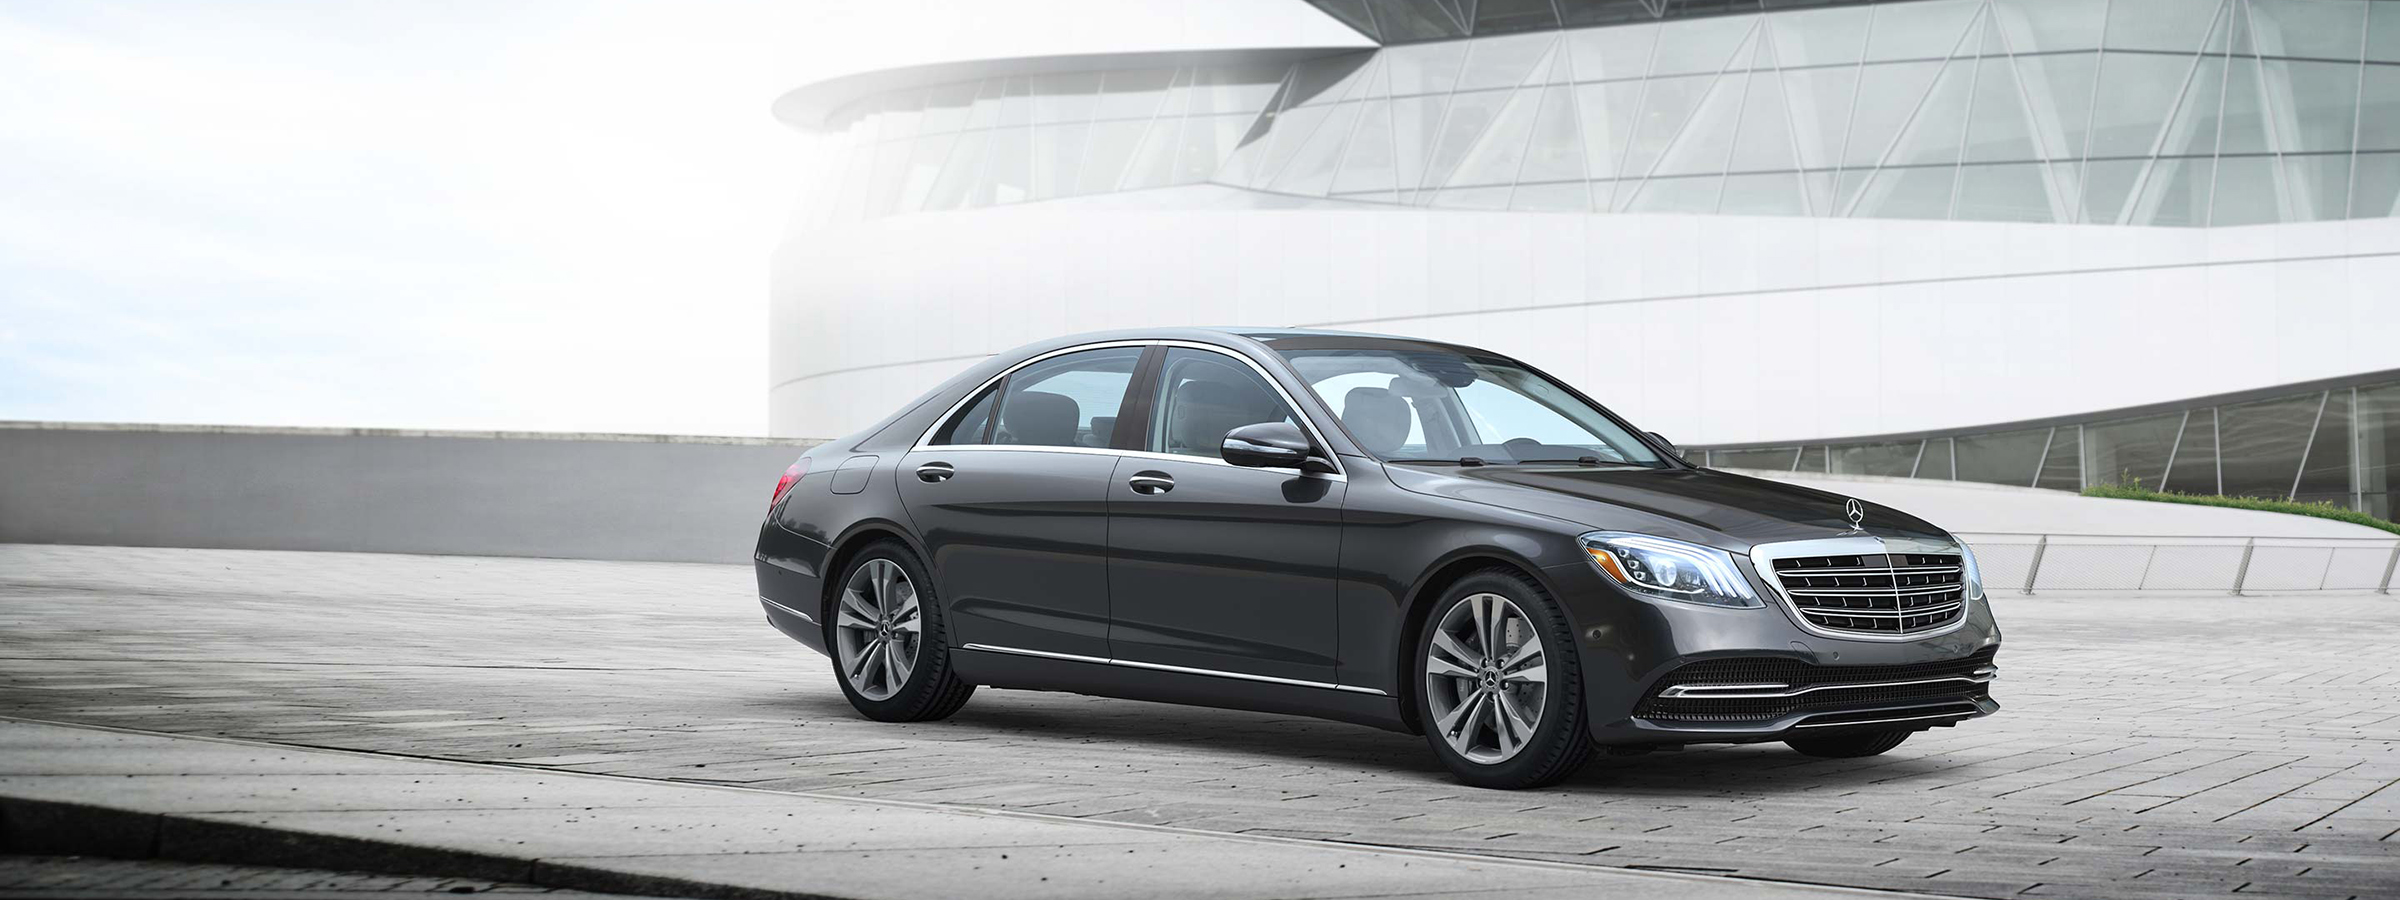 Style Guide | Mercedes-Benz USA